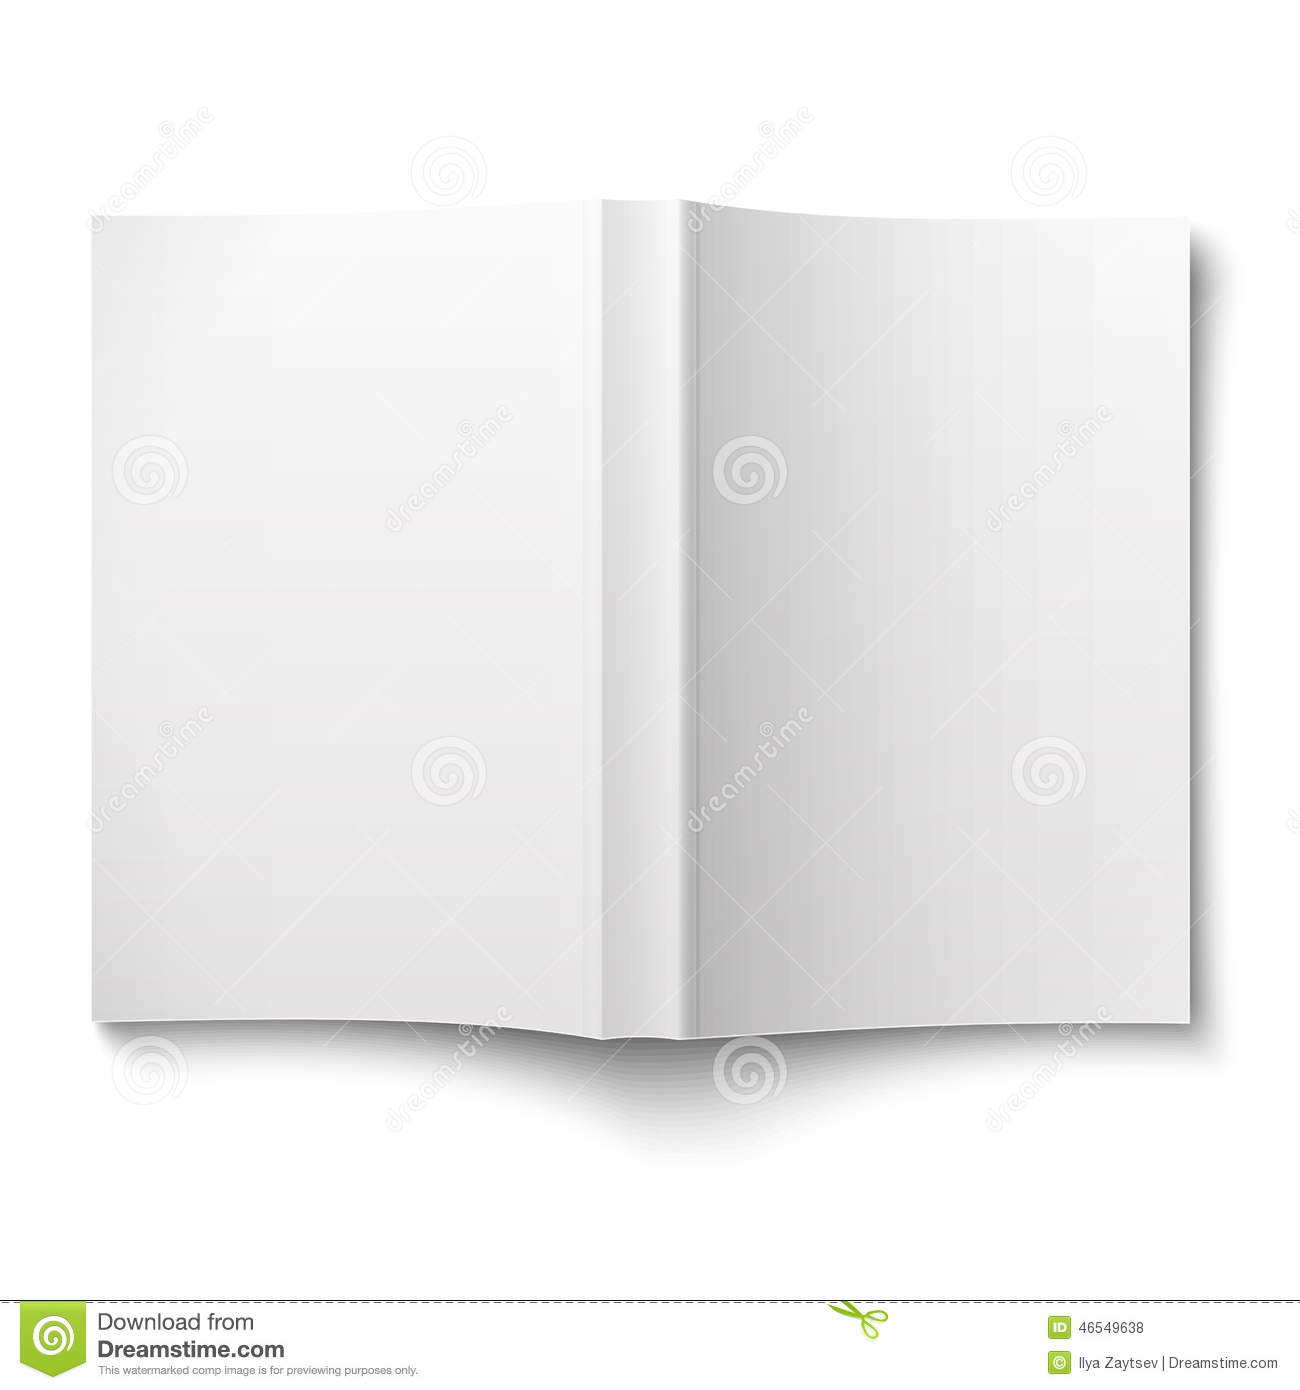 Blank Book Cover Vector Illustration Free : Blank softcover book template spread out on white stock